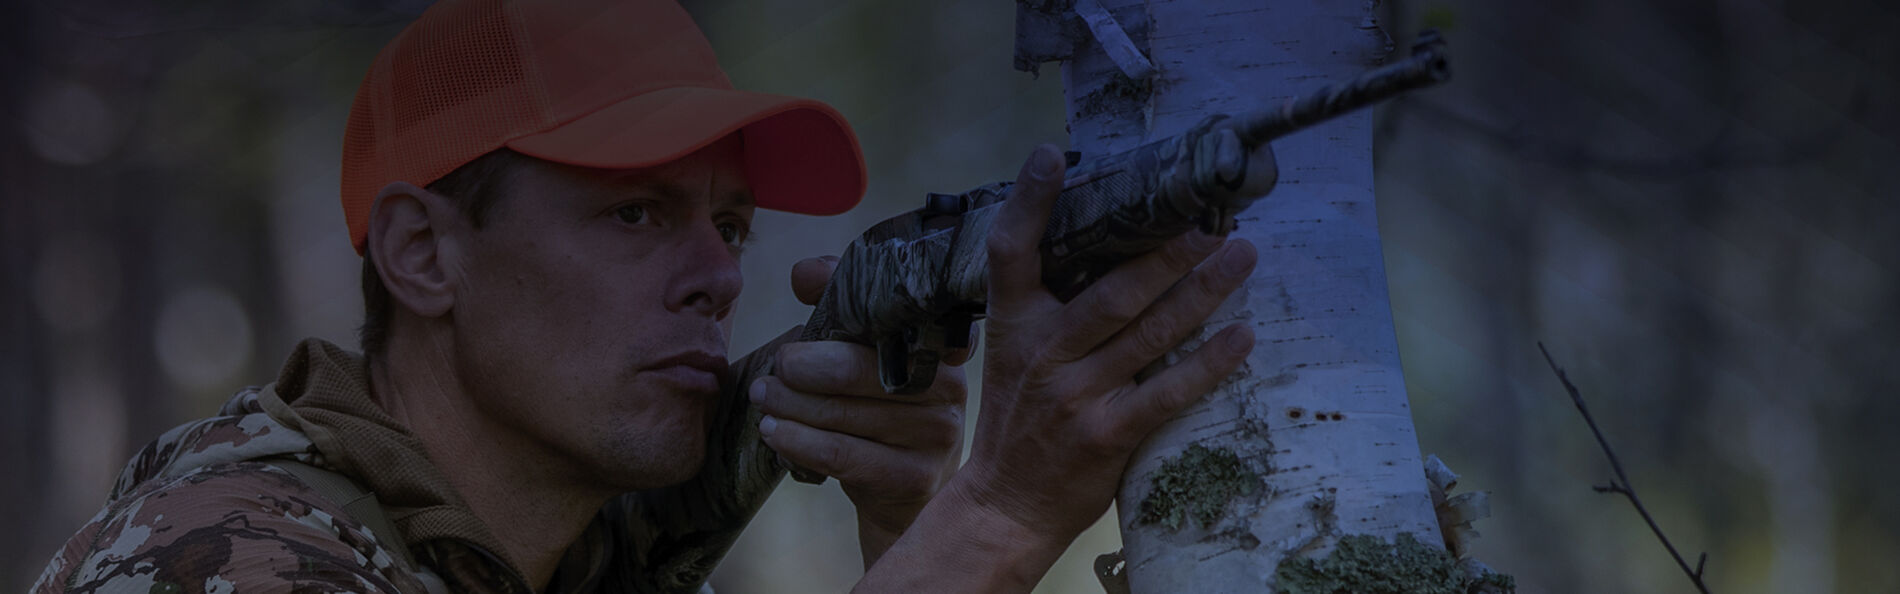 Steven Rinella looking down the iron sights of a rifle with blue overlay